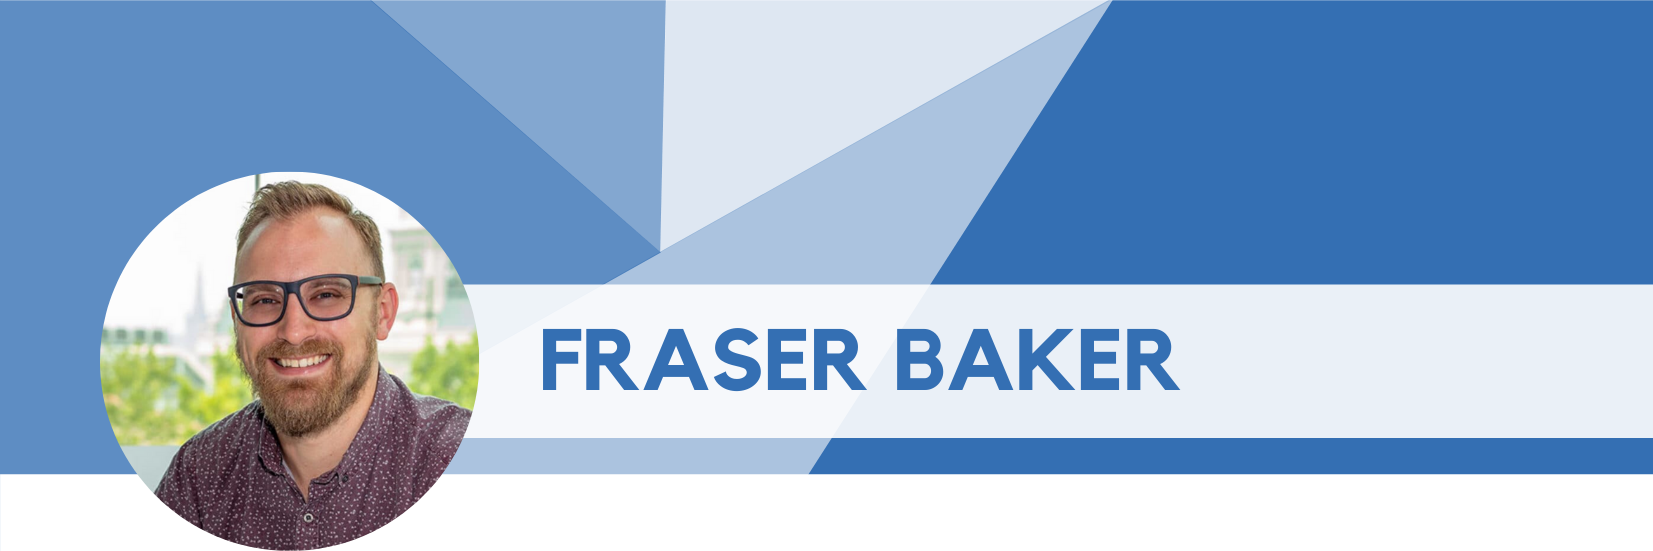 REGIONAL VICTORIA - Book a Mentoring Session with Fraser Baker (Geelong, Victoria)